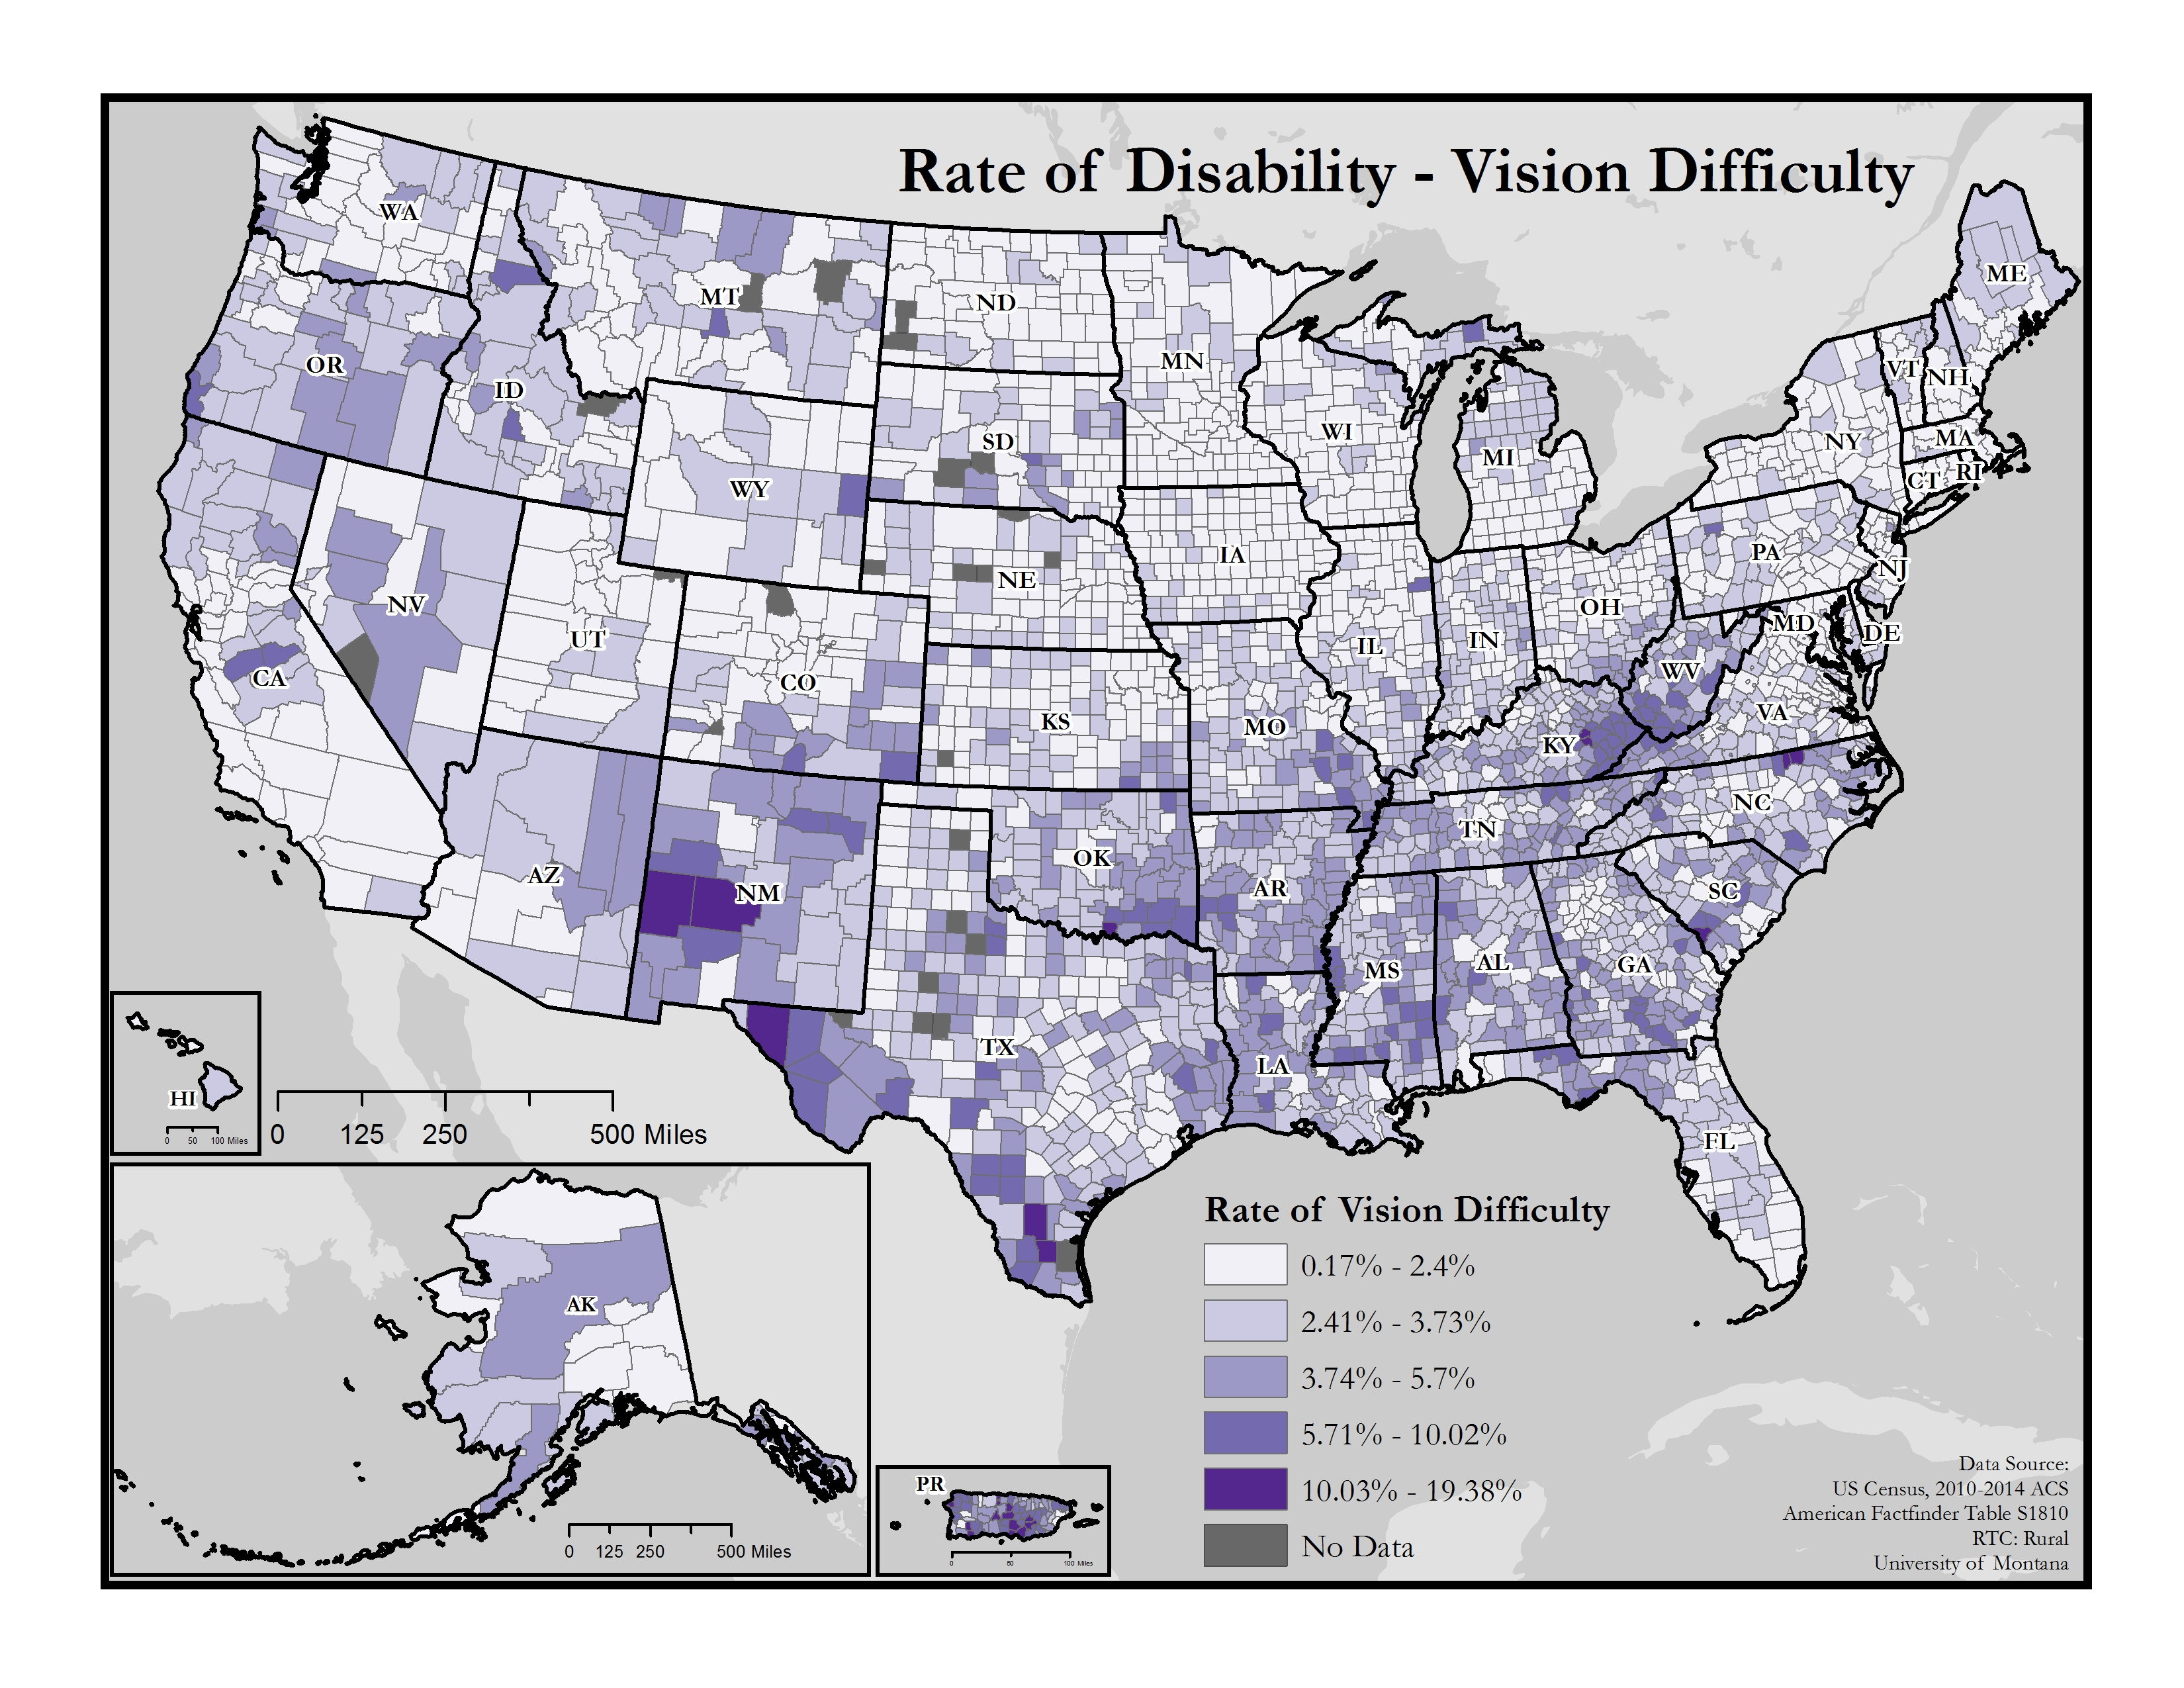 This is a map of the United States which depicts rates of vision difficulty by county.